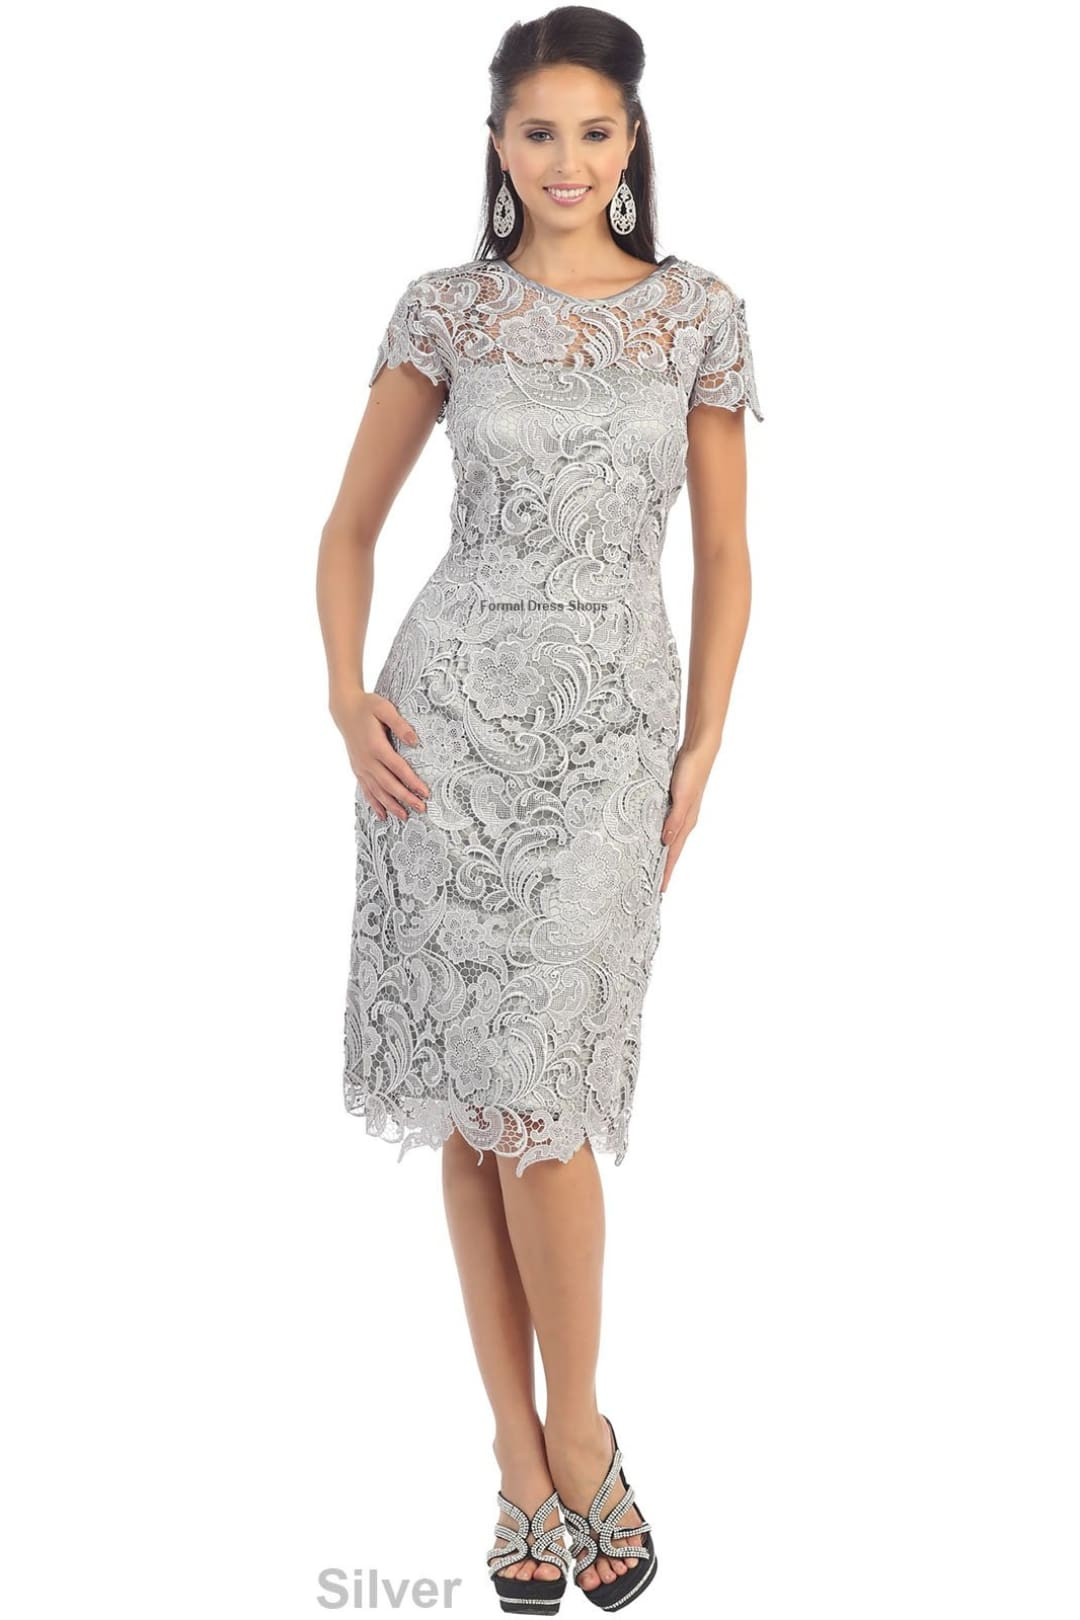 Classy Short Mother of the Groom Dress - Silver / M